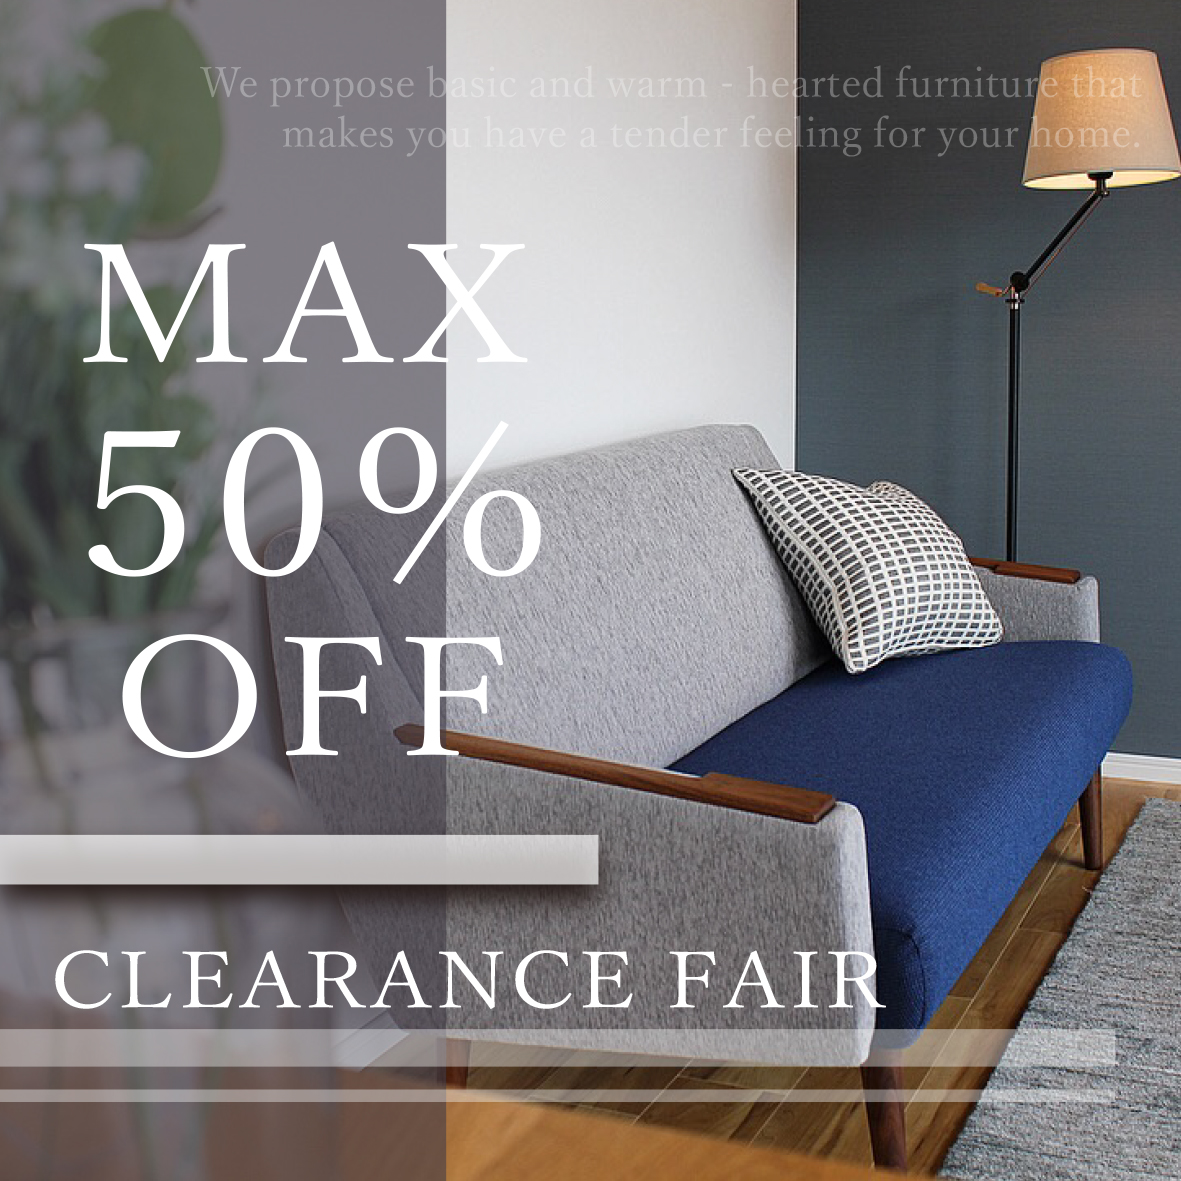 CLEARANCE FAIR MAX50% OFF !!